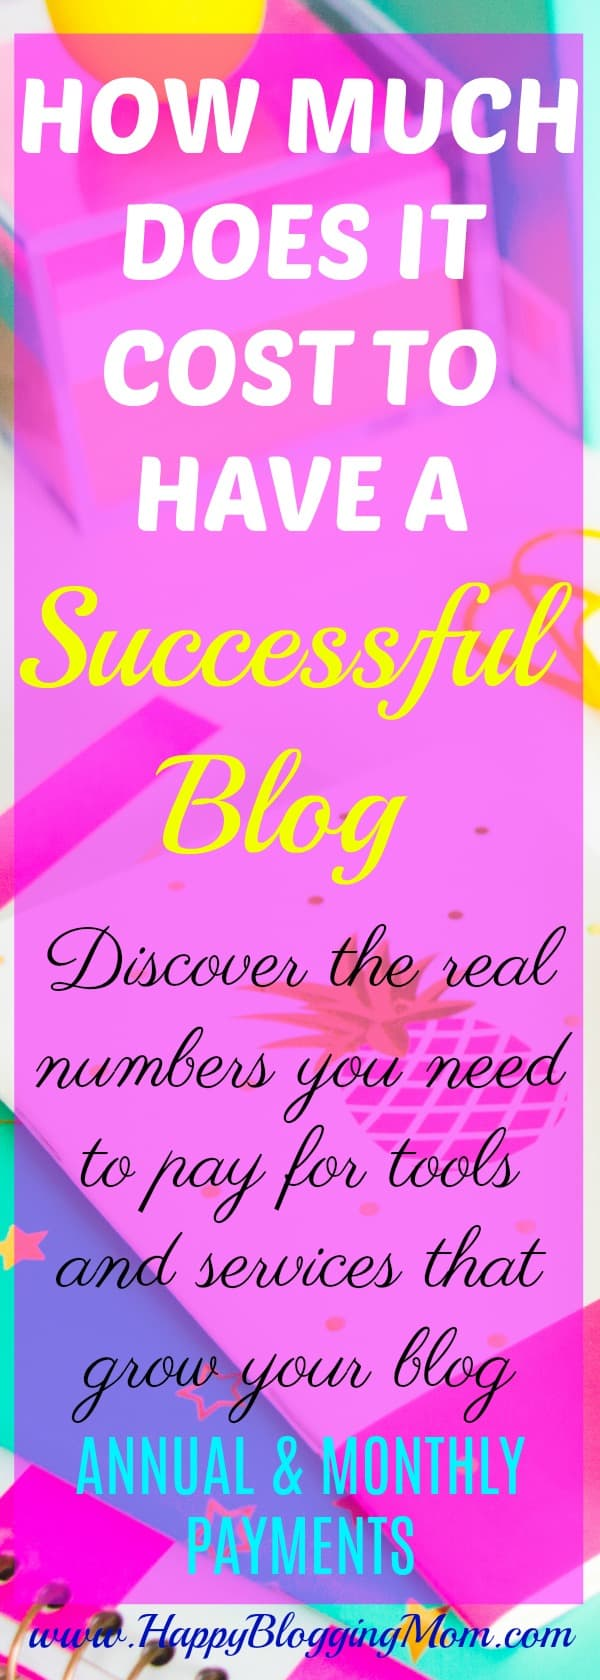 Interested to start a blog? Want to know how much it costs to start a successful blog? In this posts, I will share with you all the blog expenses that will show you how much it really costs to have a successful blog! Click here to read more!